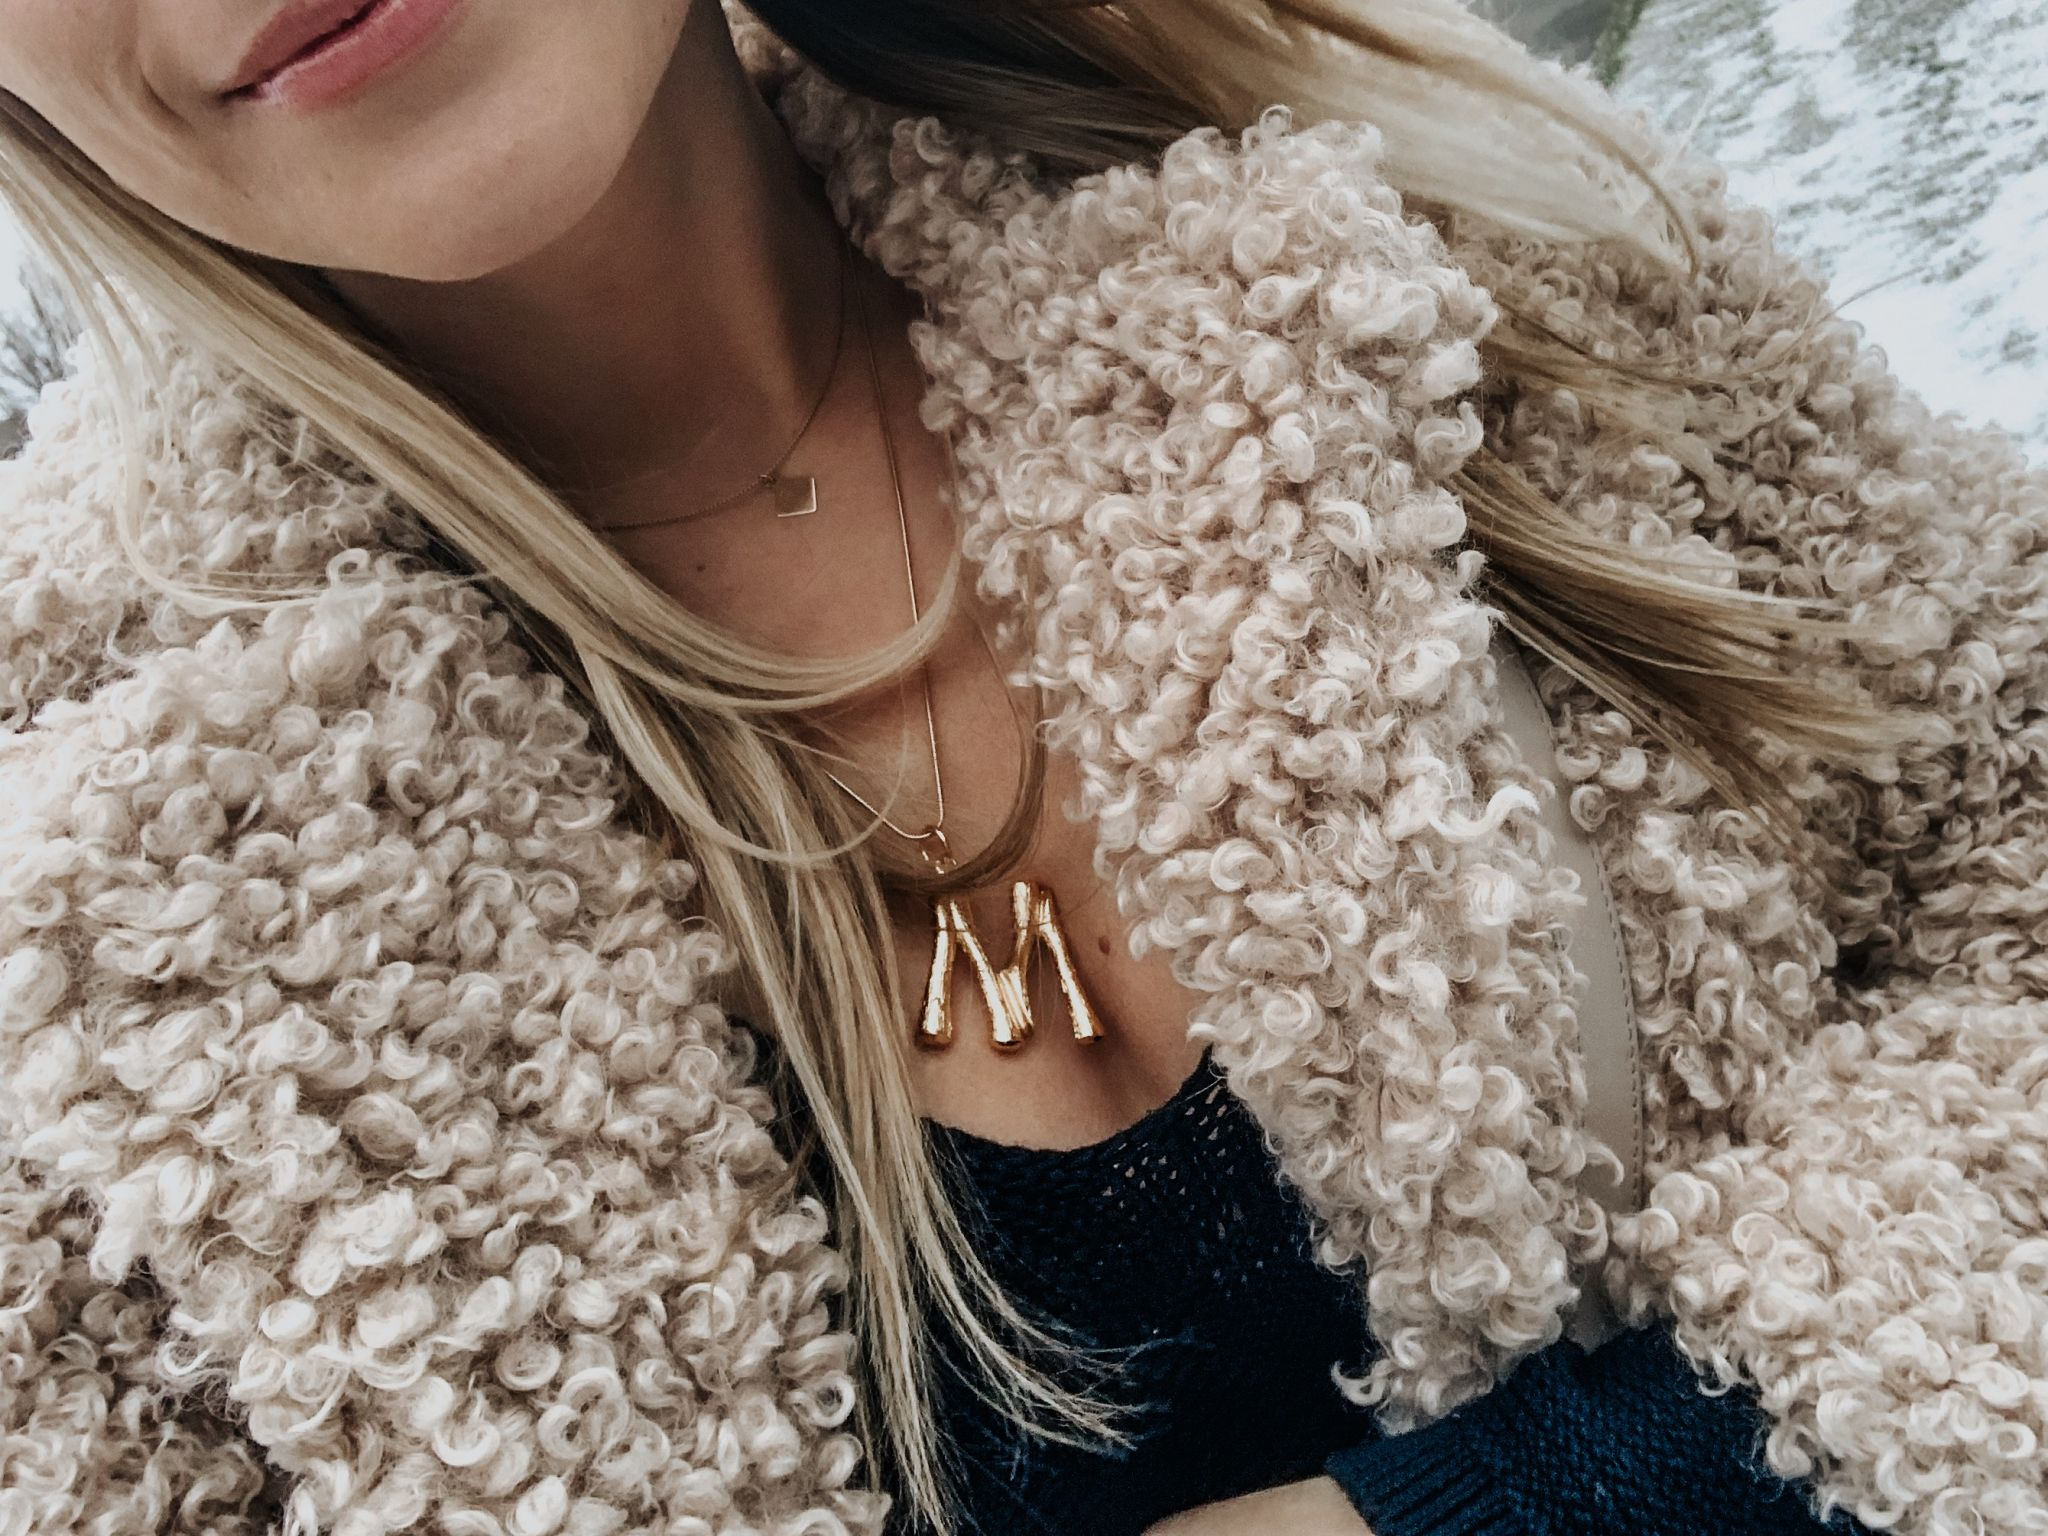 from where i stand, celine large initial necklace, 1 person wearing teddy coat